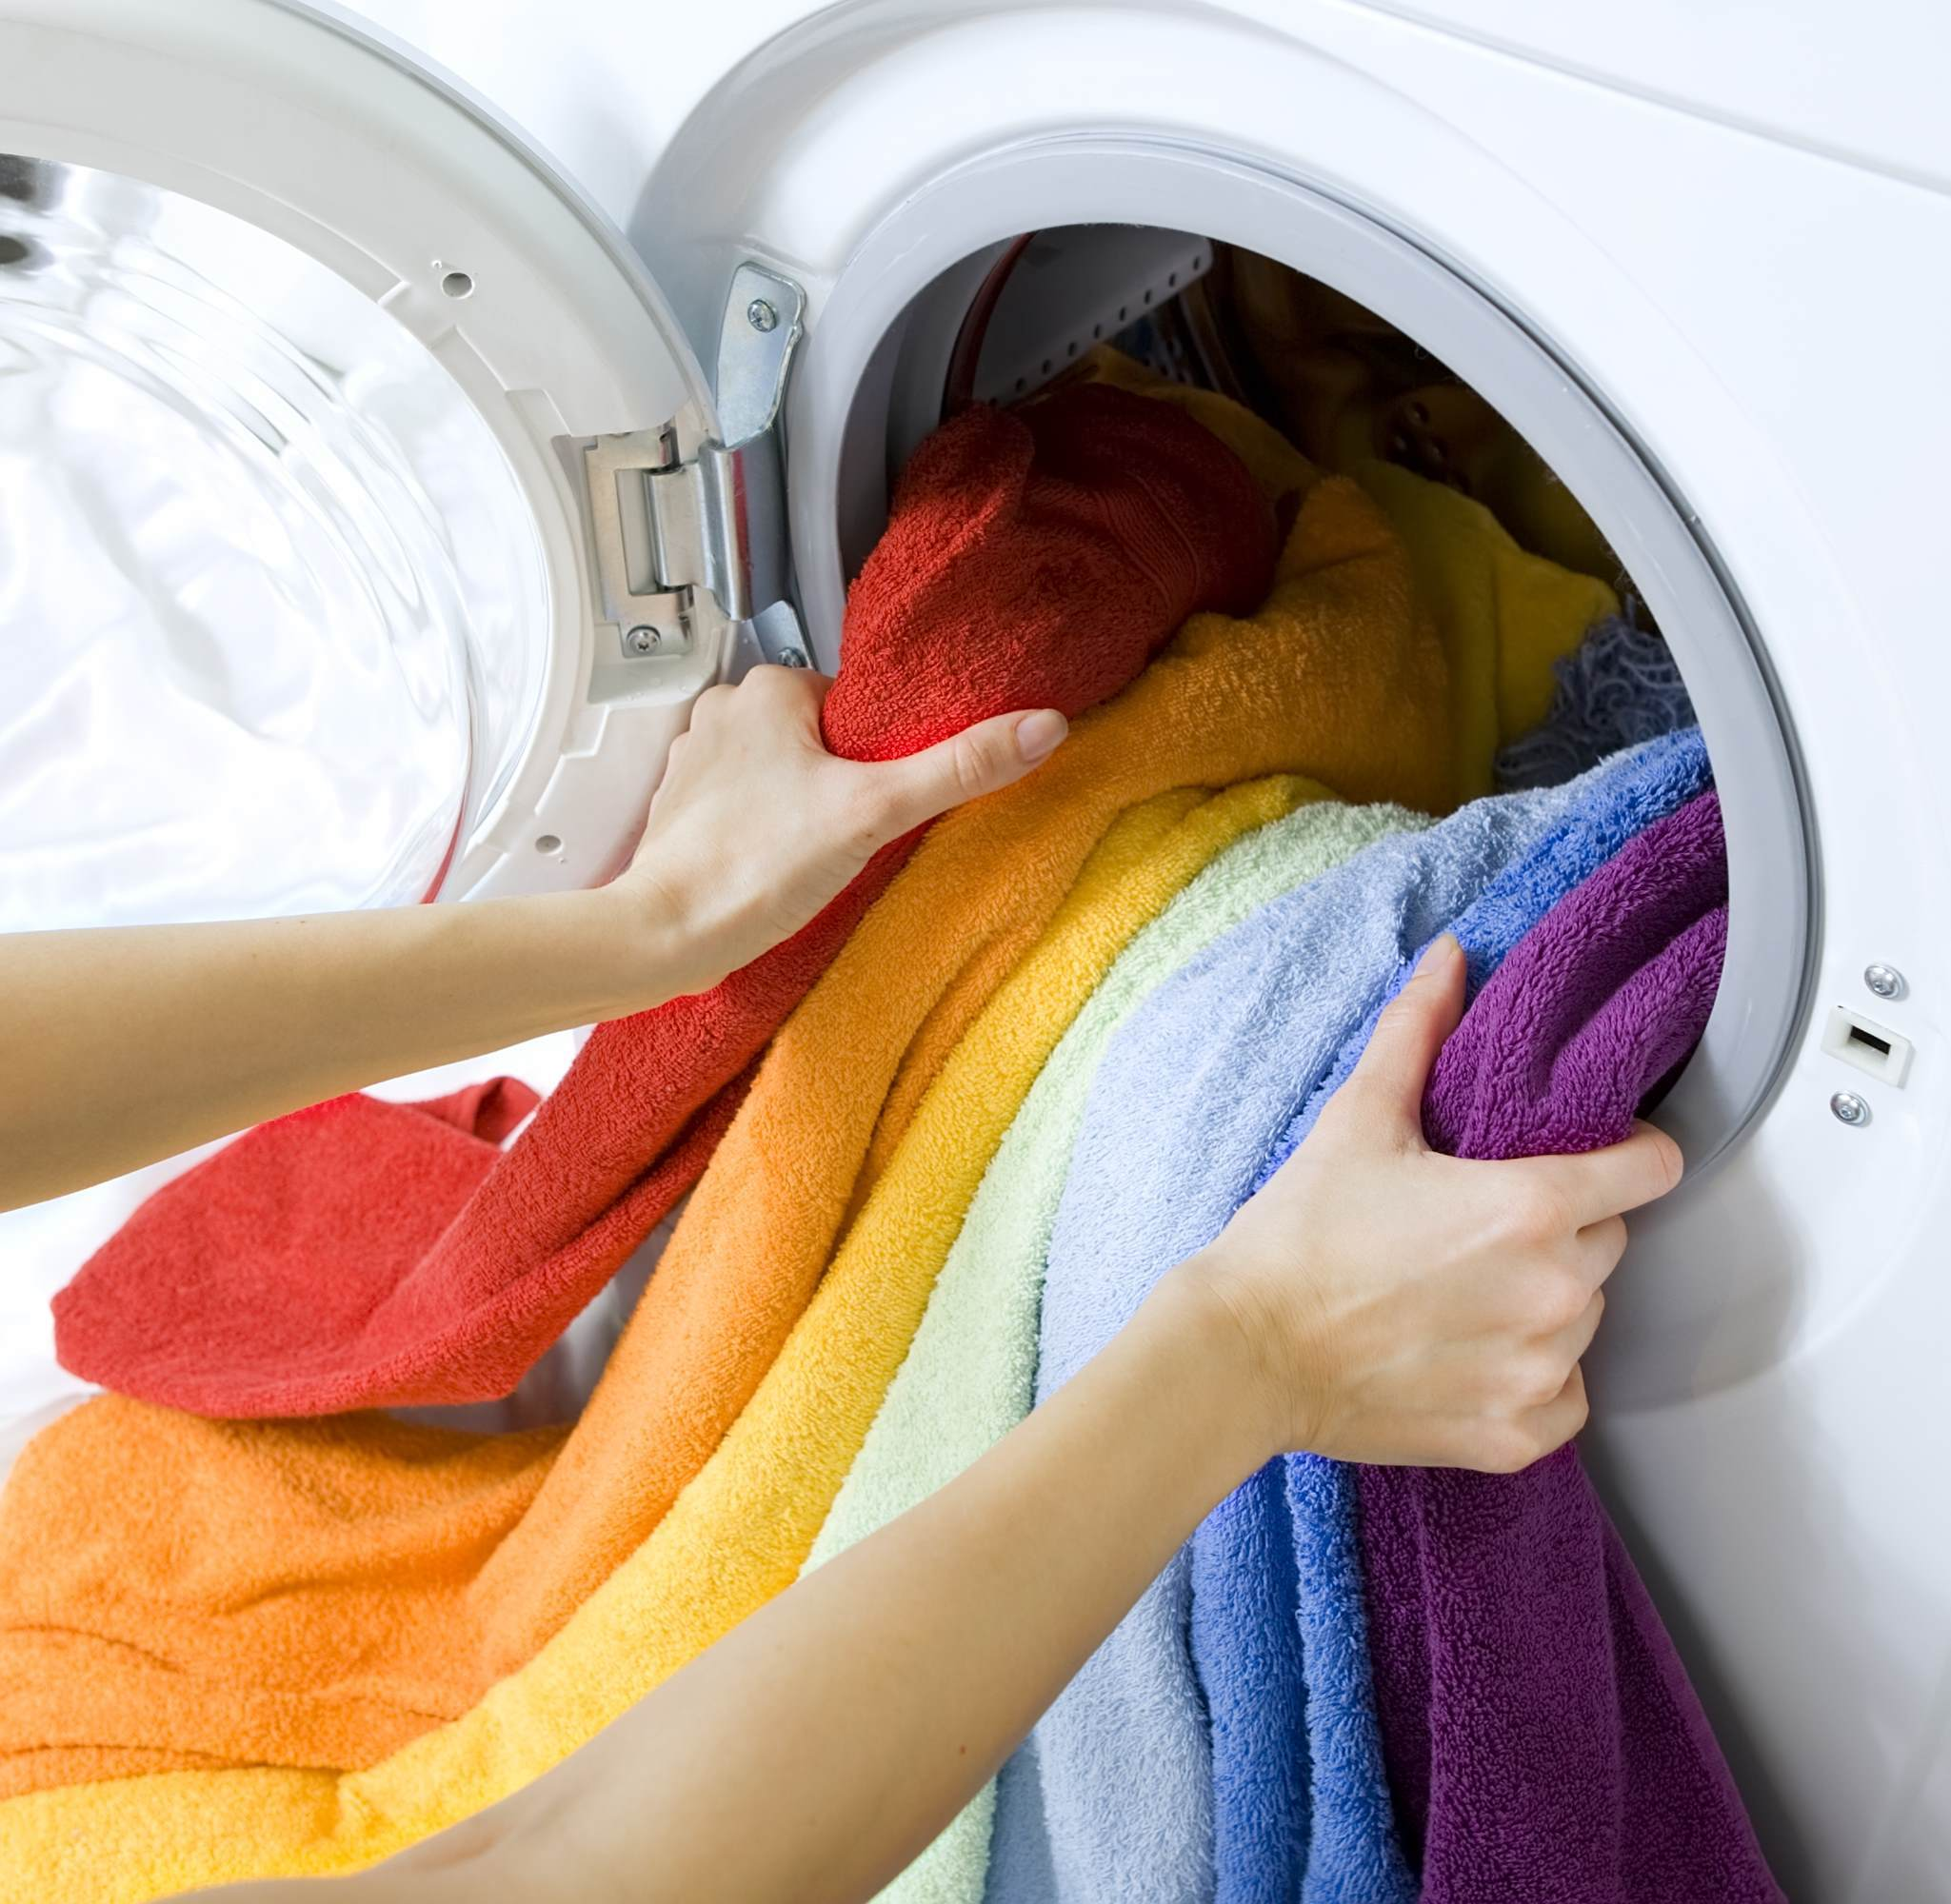 Clean towels being removed from a washing machine